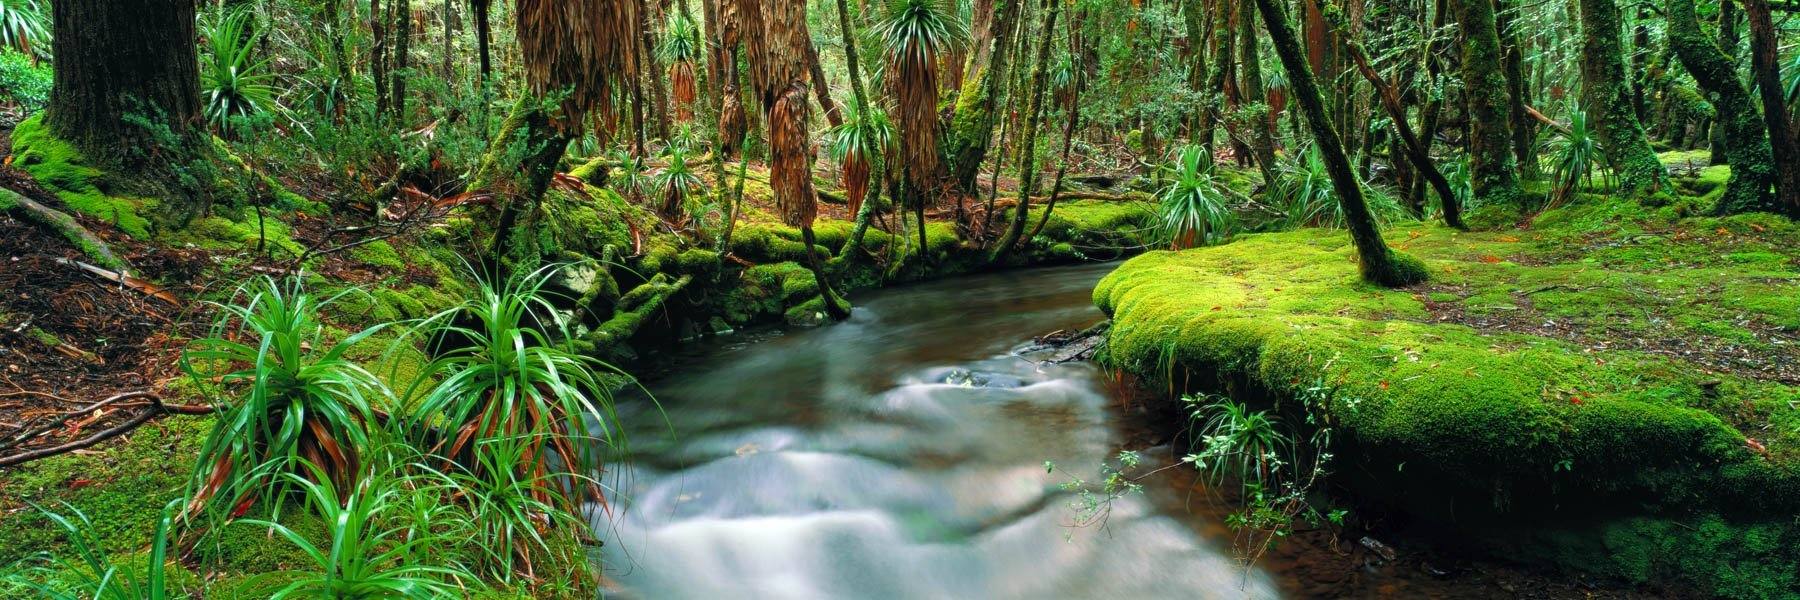 A gentle stream cutting through heavily mossed banks and tree trunks, Pine Valley, Tasmania, Australia.